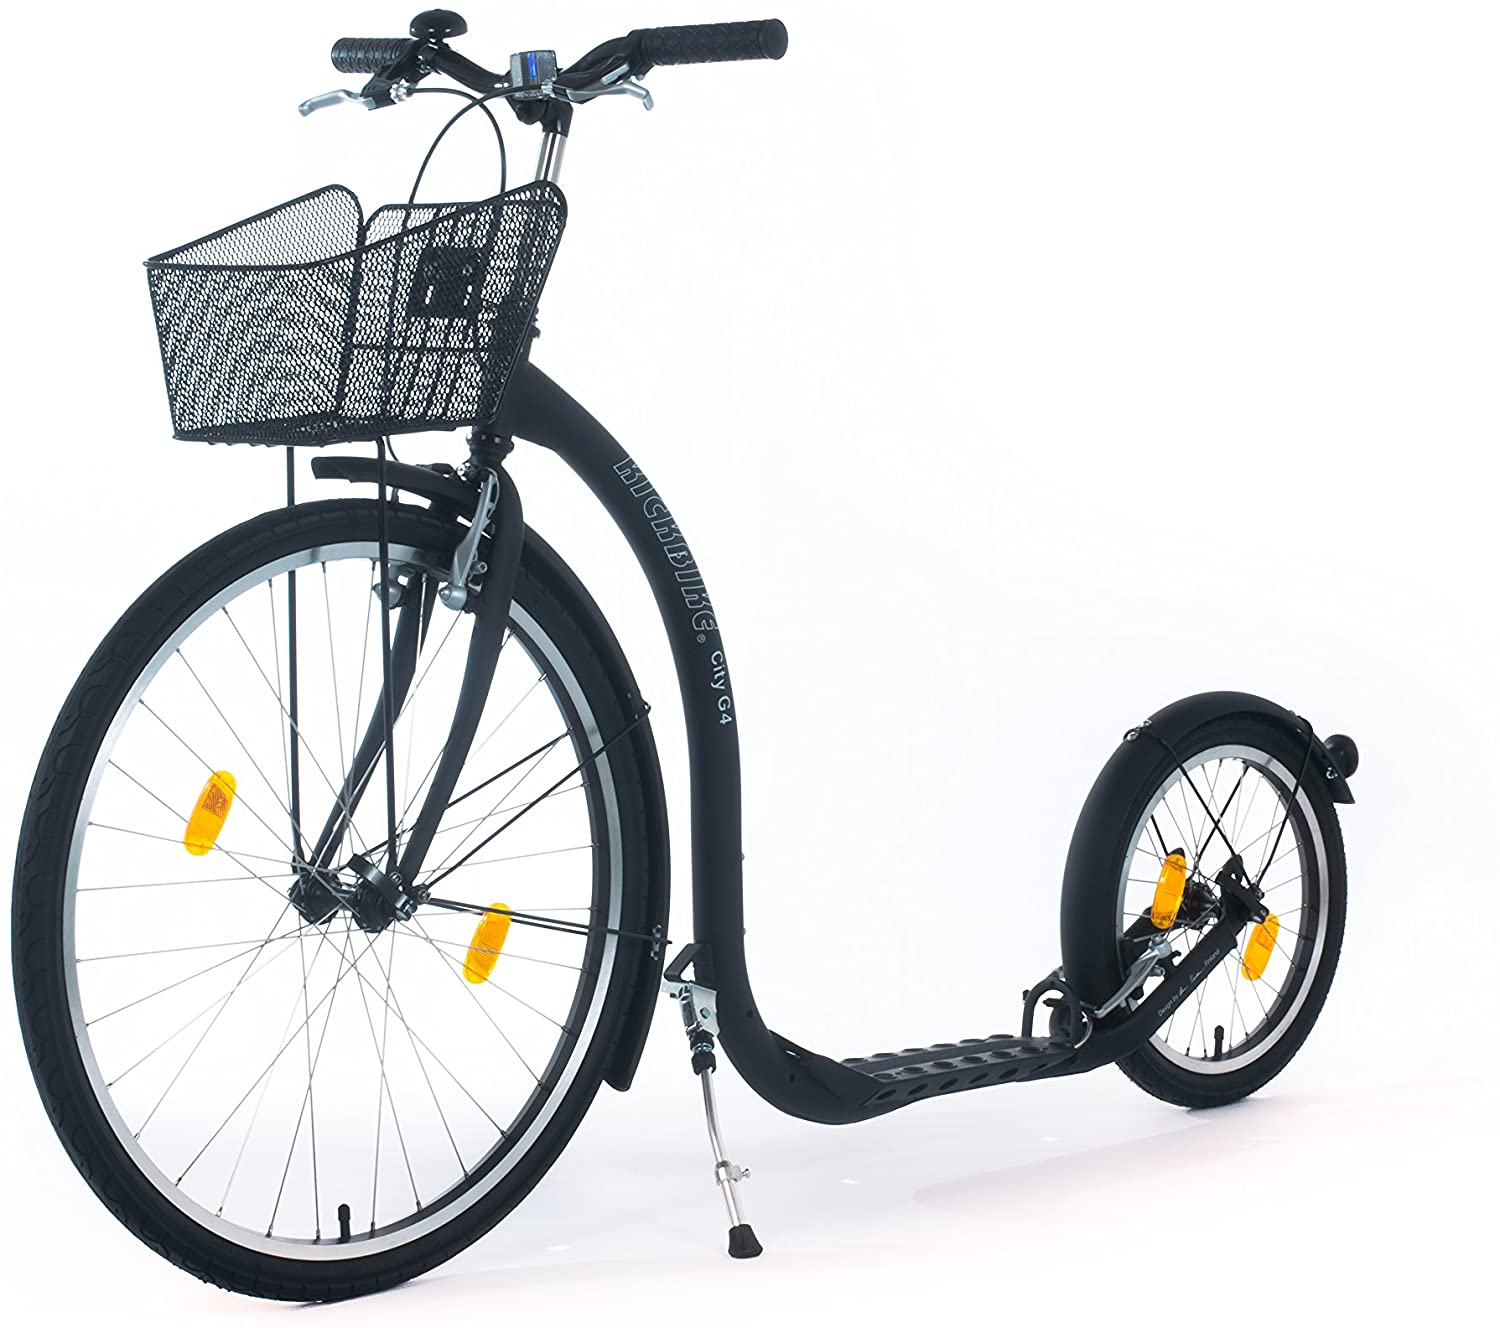 KICKBIKE CITY TRETROLLER G4 BLACK